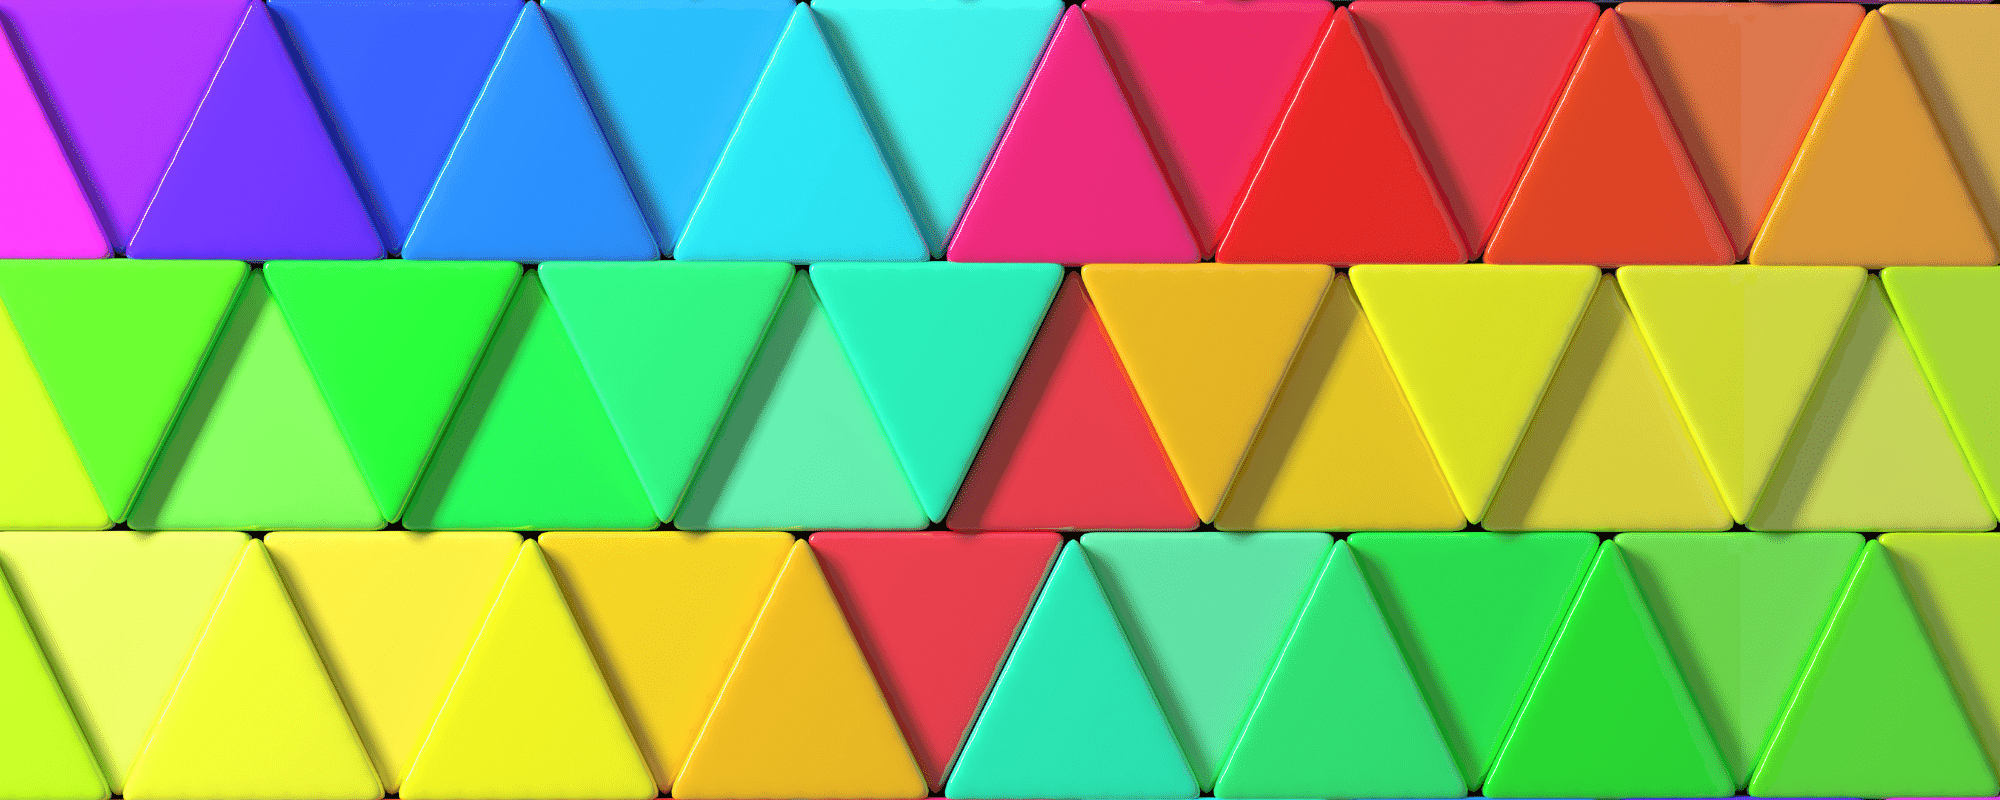 How to Respond to an Upside Down MTSS Tiered Triangle